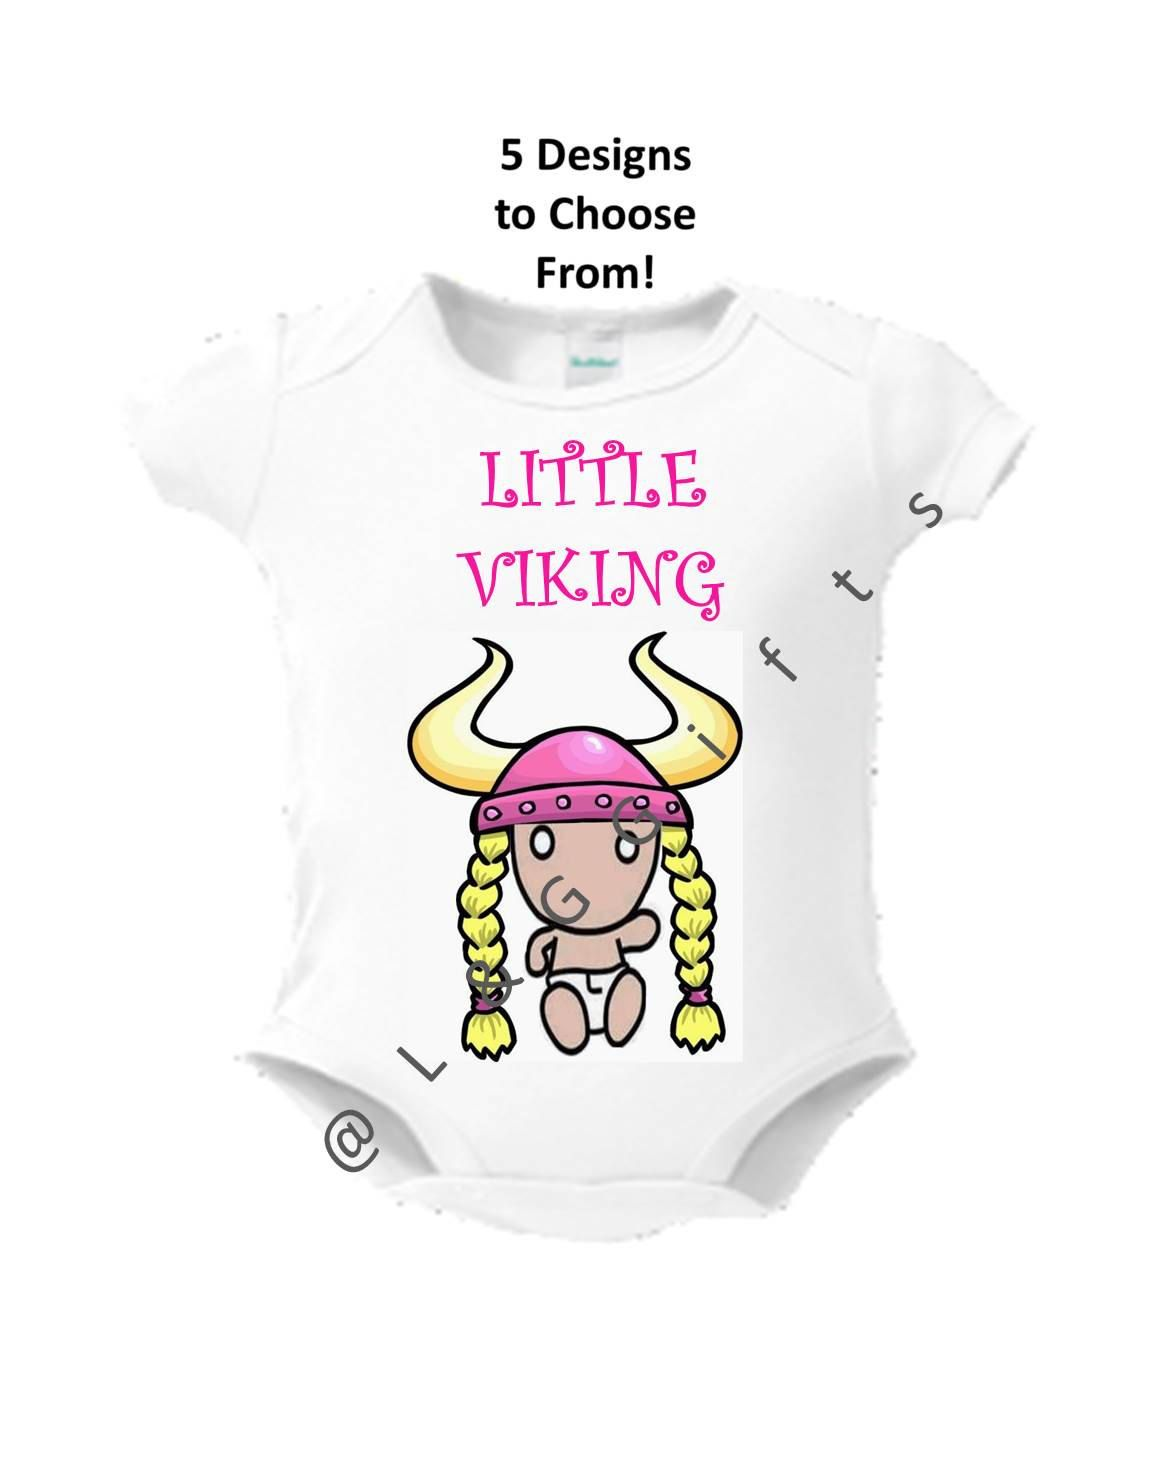 b1a5ab436 Viking, Baby Girl,Gift, Onsie, Sister, Pig, Angel, Lady, Free Shipping,  Toddler Tshirt, Little Theme, Cute, Funny, Little Kids, Girly - pinned by  pin4etsy. ...